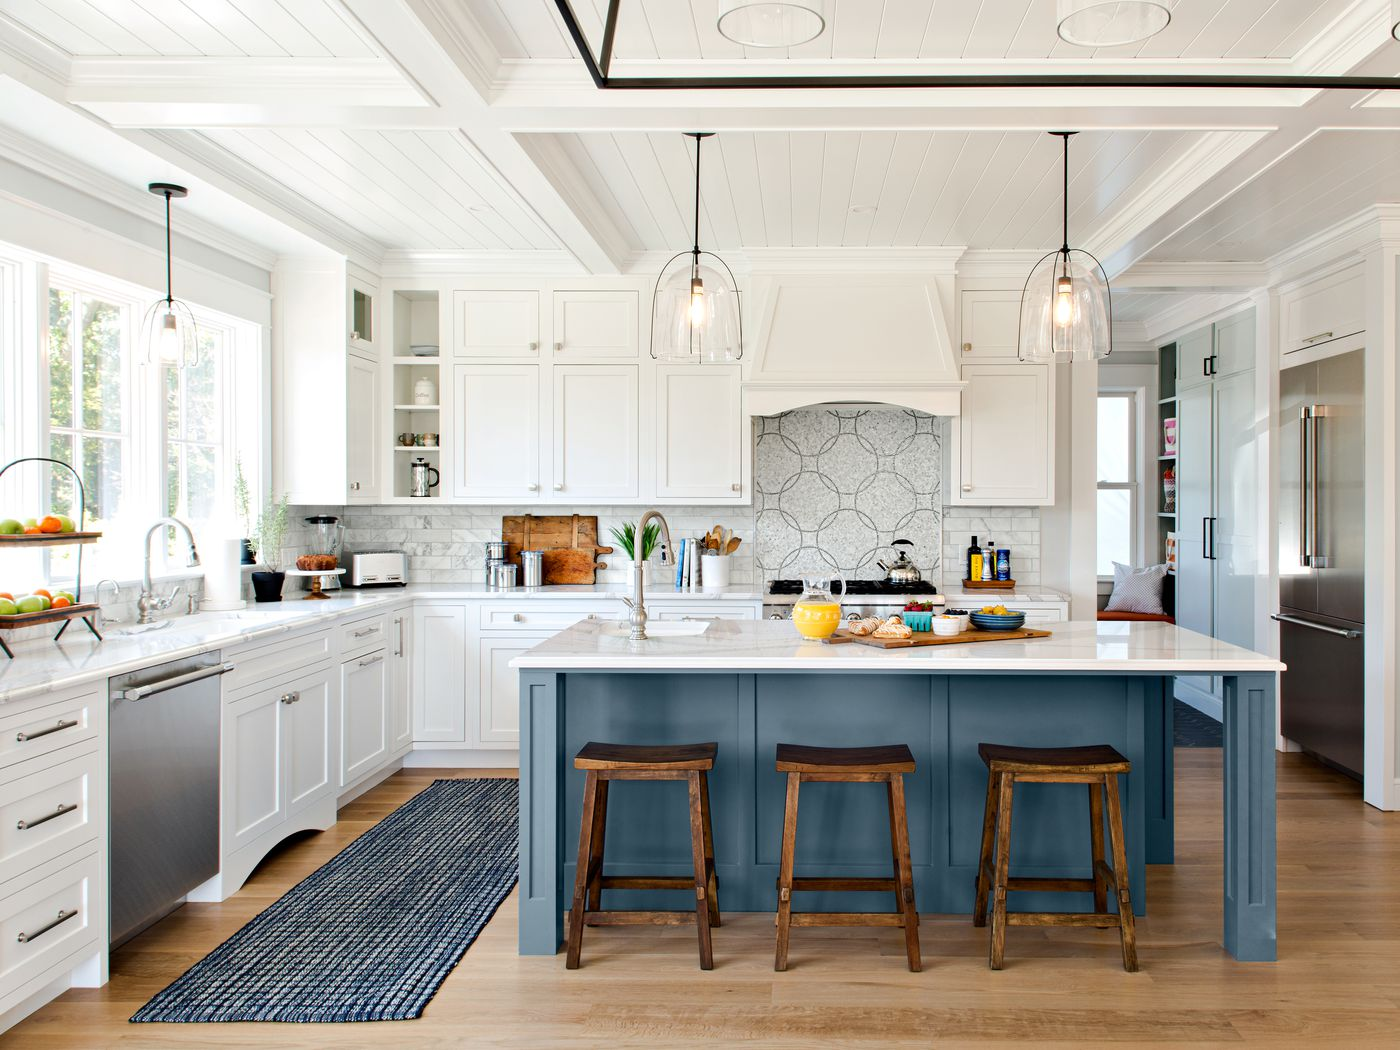 Kitchen Island Ideas: Design Yours to Fit Your Needs - This Old House